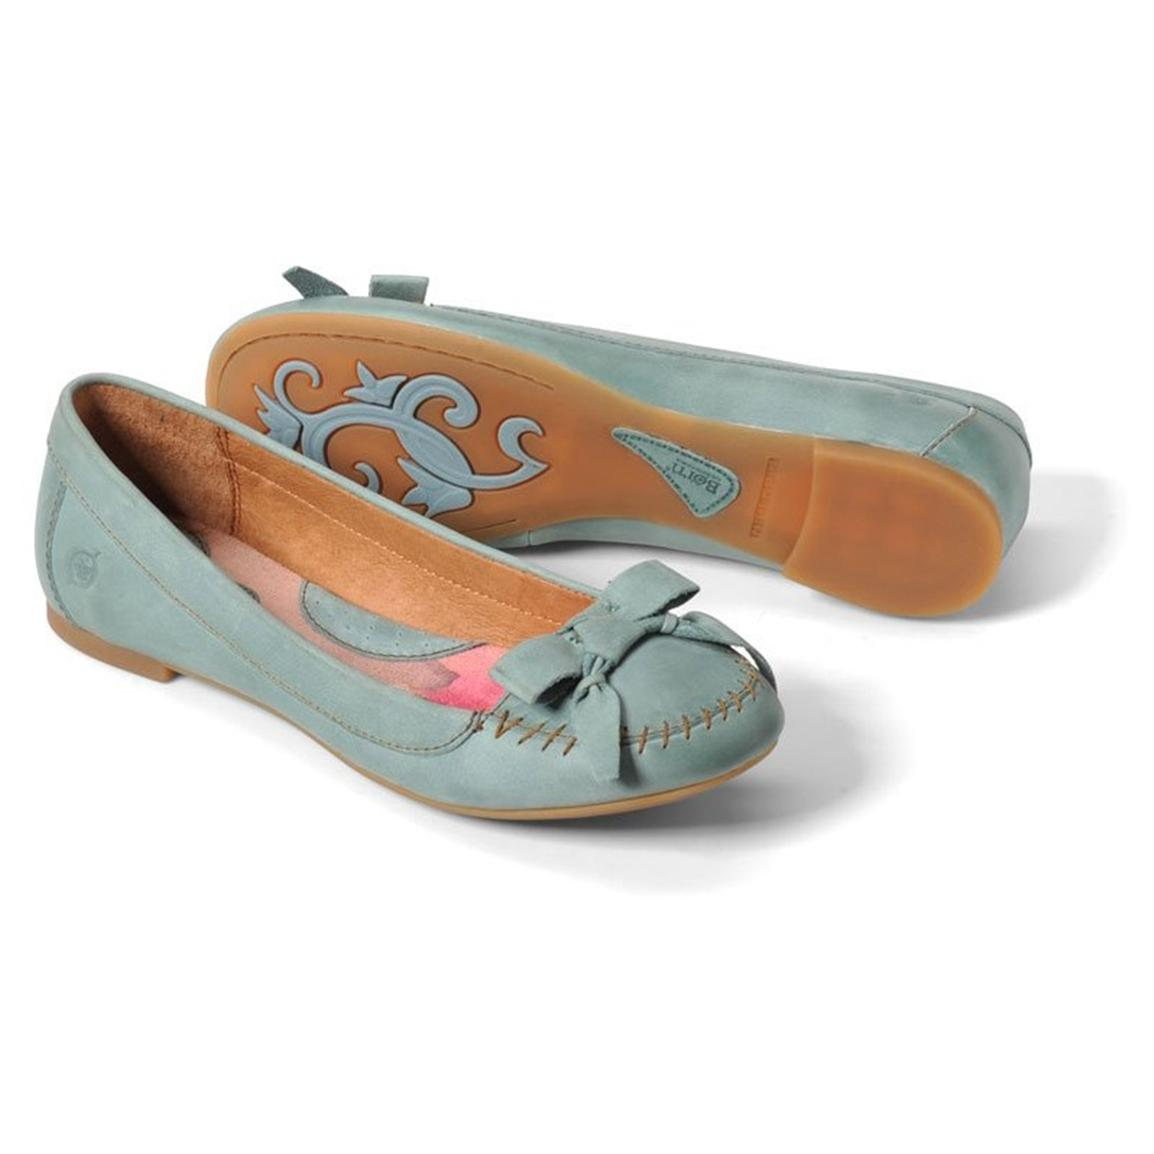 Born Shoes Flats Clearance